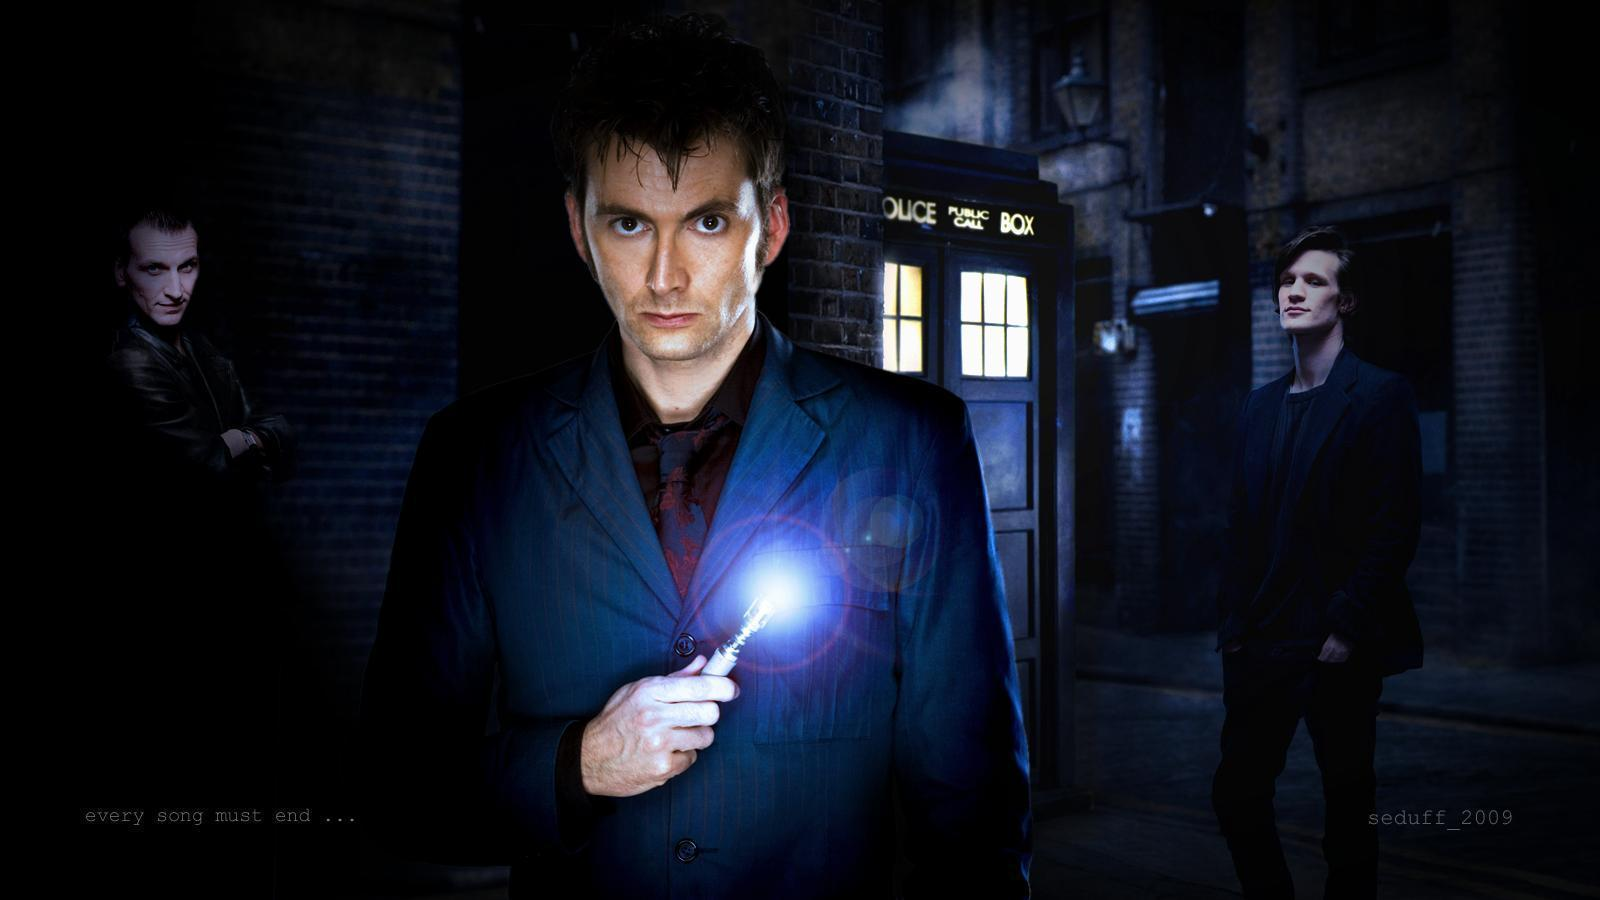 dr who wallpaper 8 - photo #30